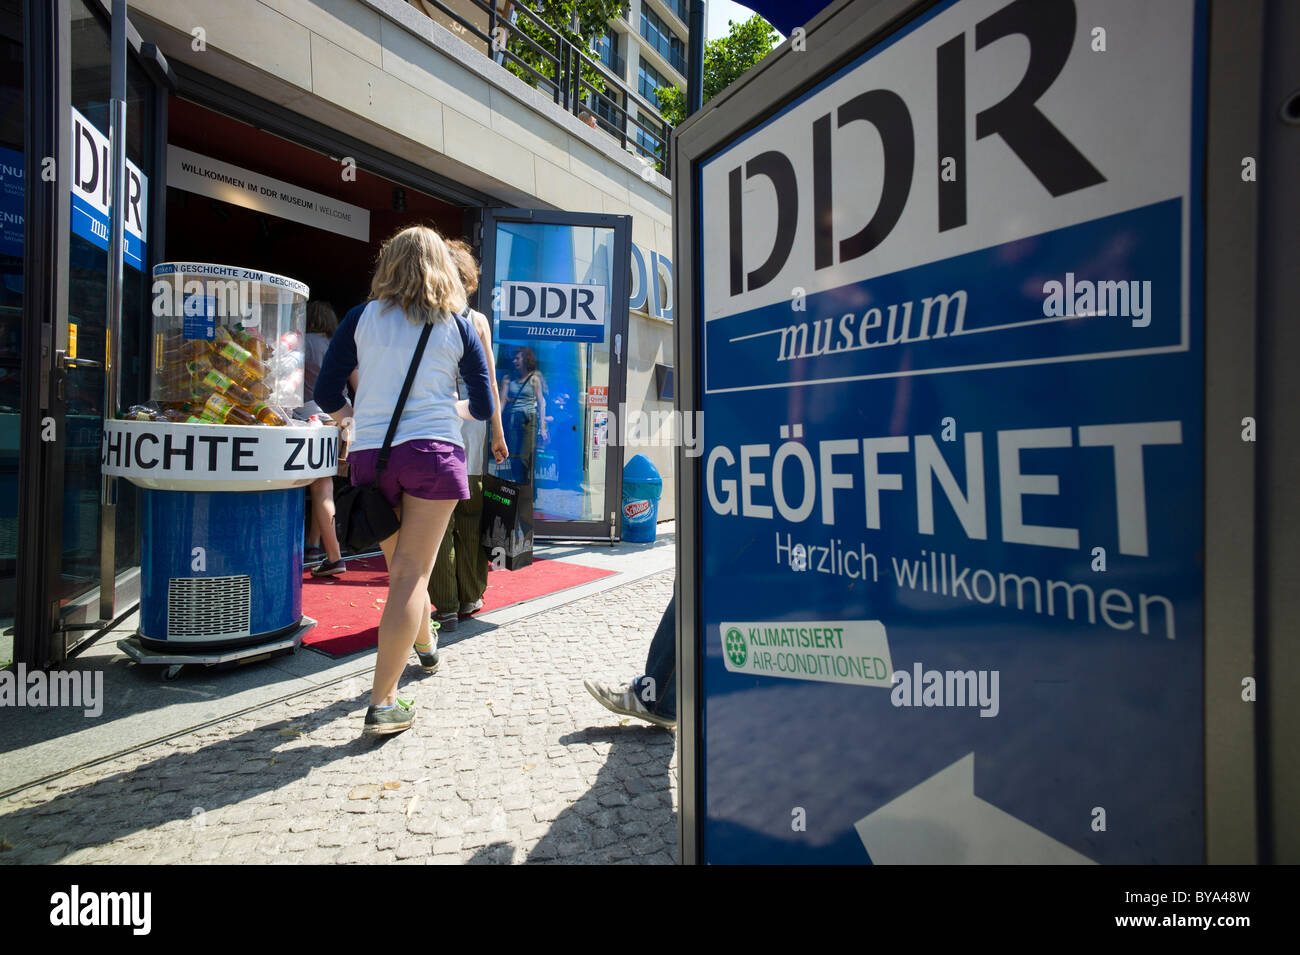 Tourists in front of the DDR Museum, museum of the German Democratic Republic, Mitte district, Berlin, Germany, - Stock Image